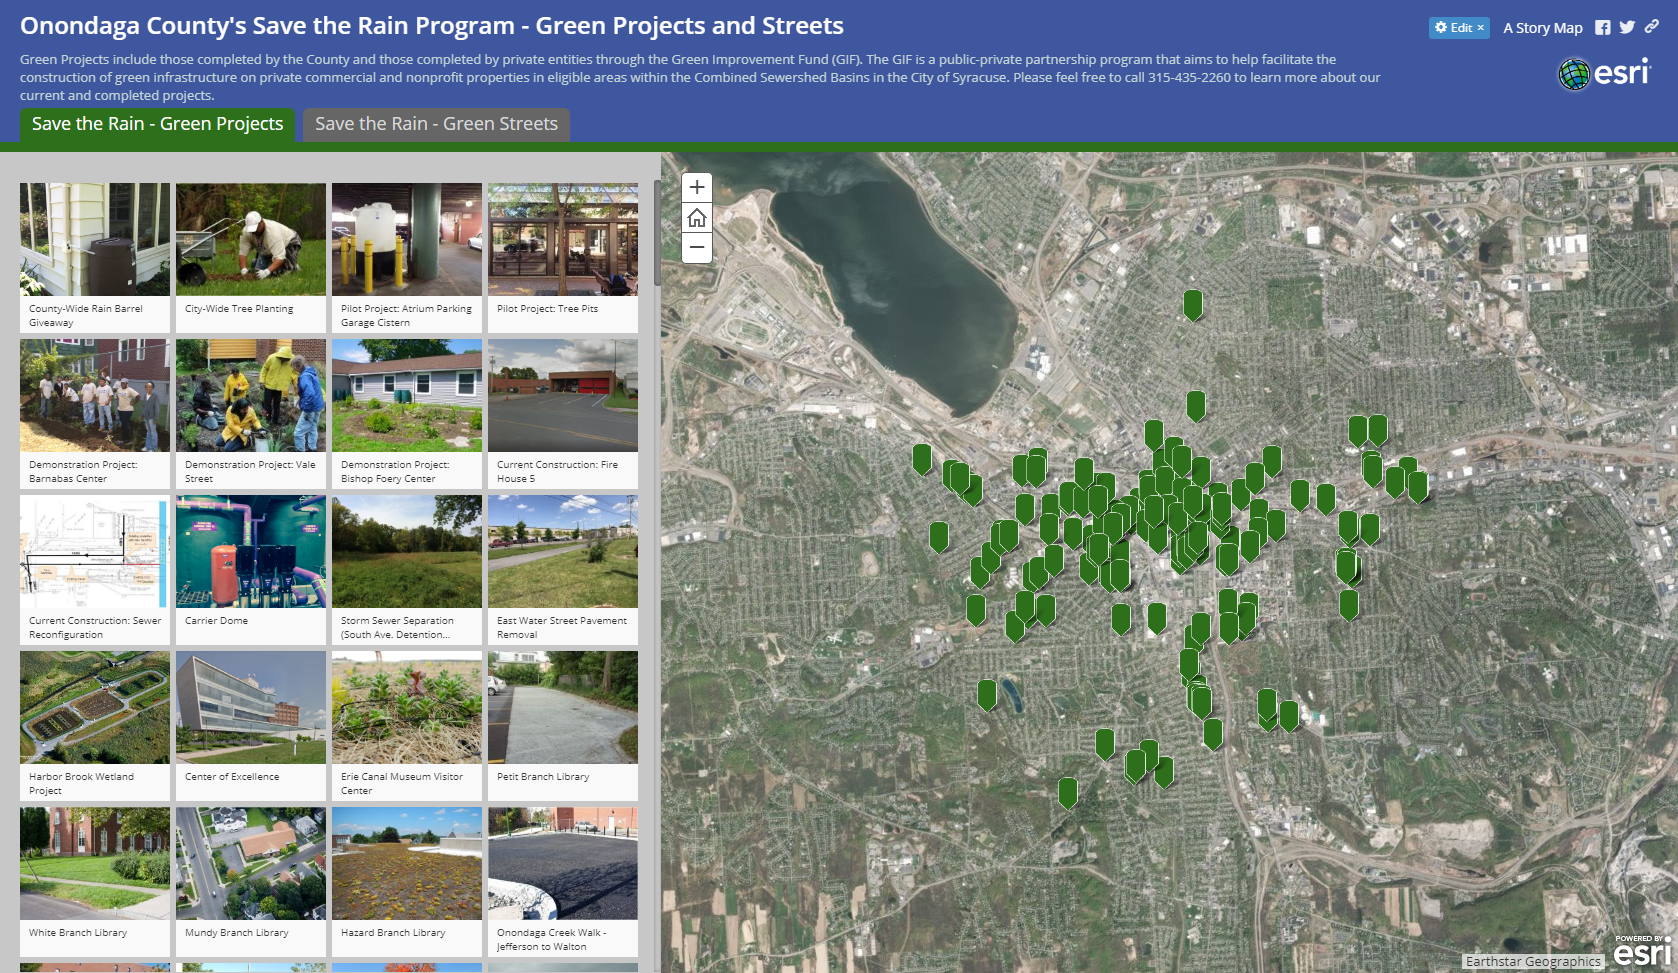 Save the Rain Launches Green Infrastructure Map